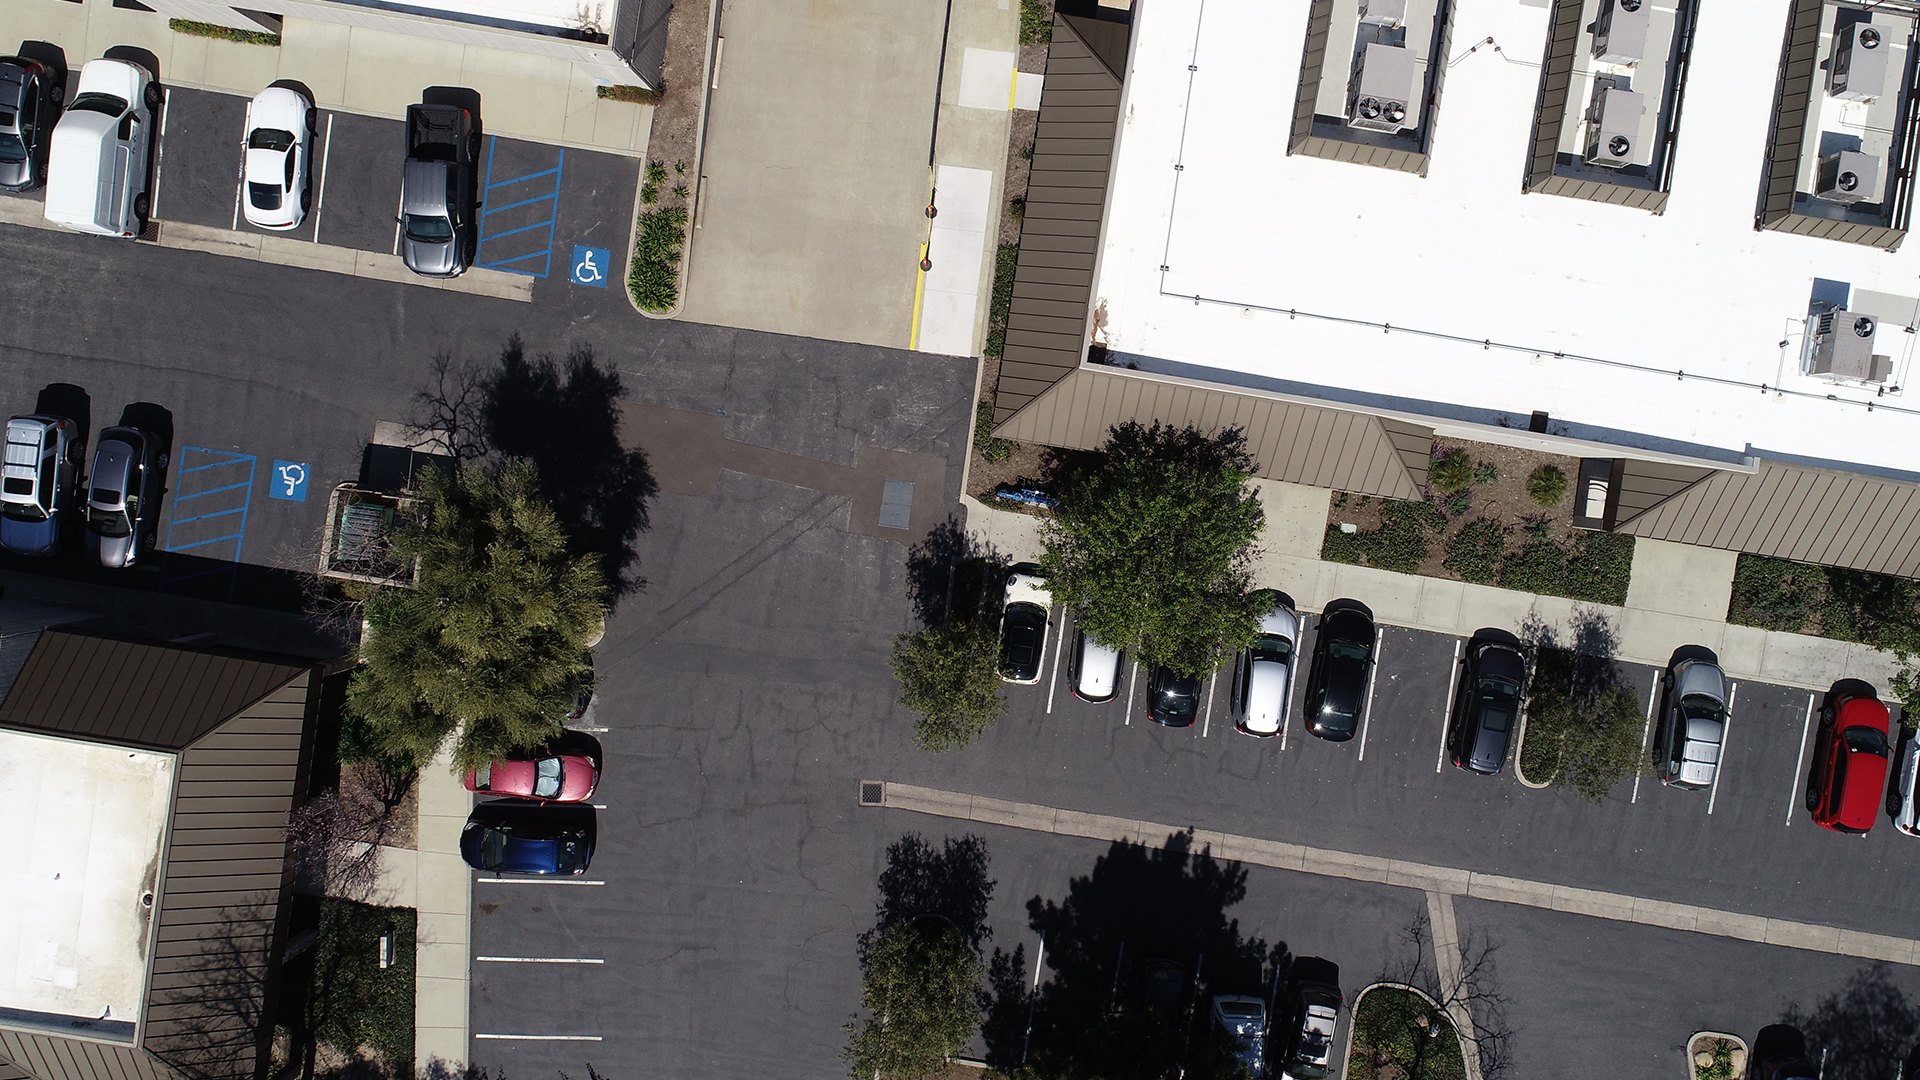 Drone mapping: Learning Pix4D Drone Mapping